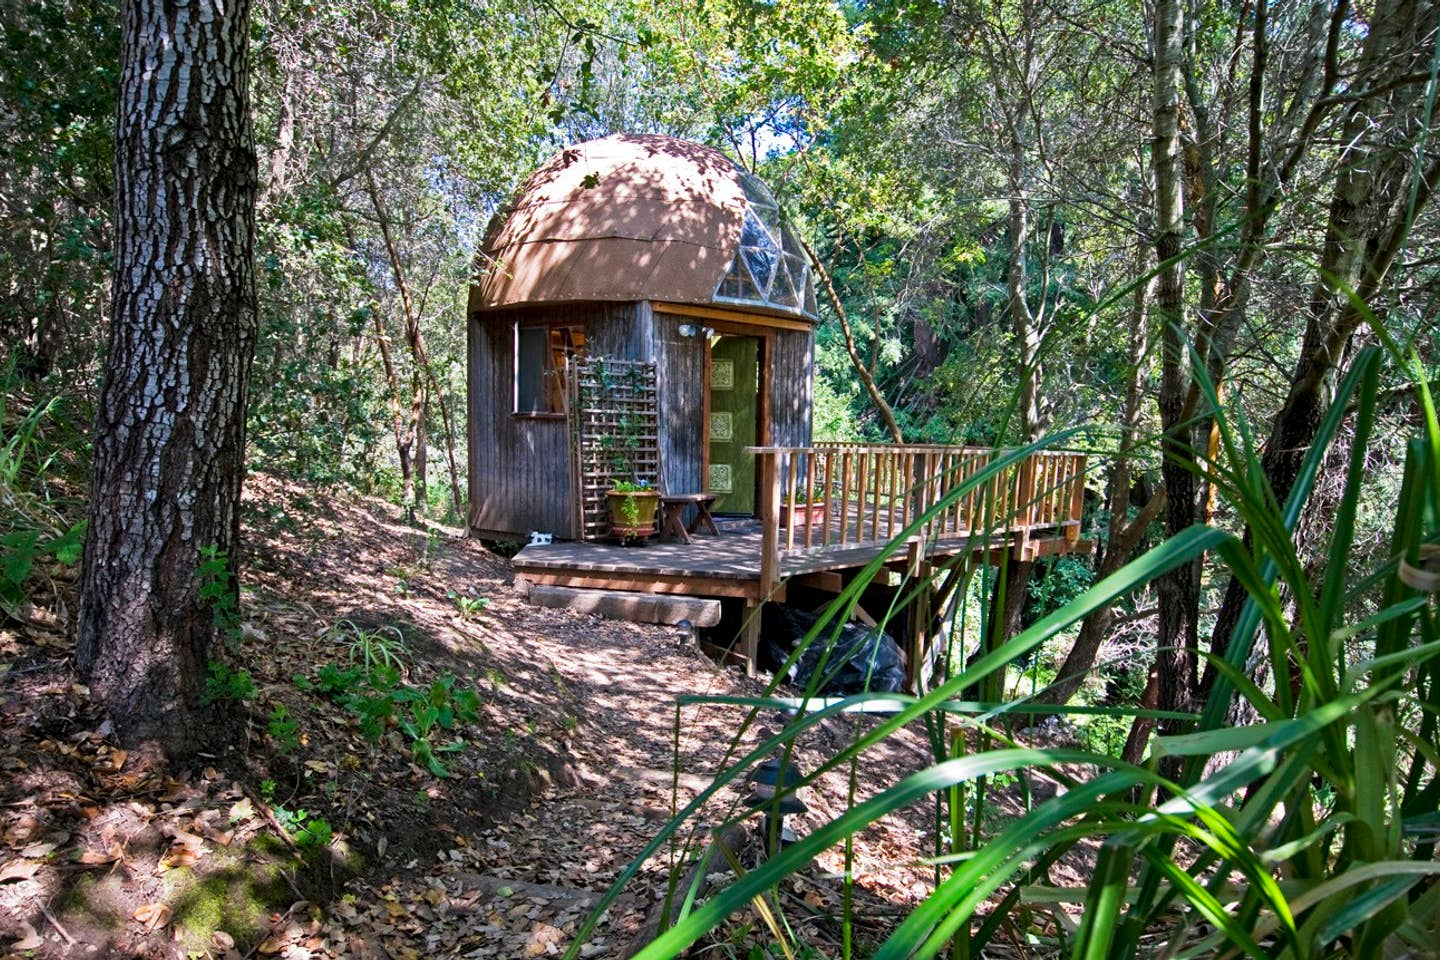 Outside View of mushroom dome cabin